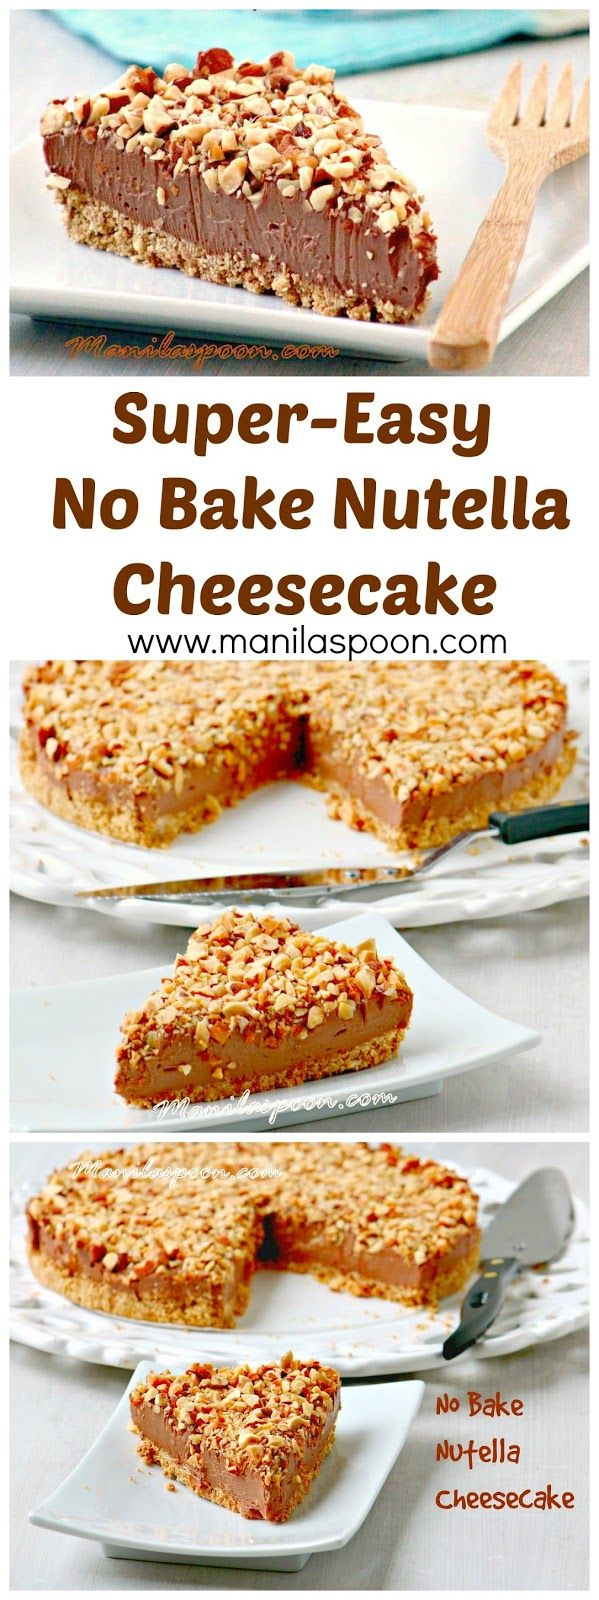 Manila Spoon: No Bake Nutella Cheesecake